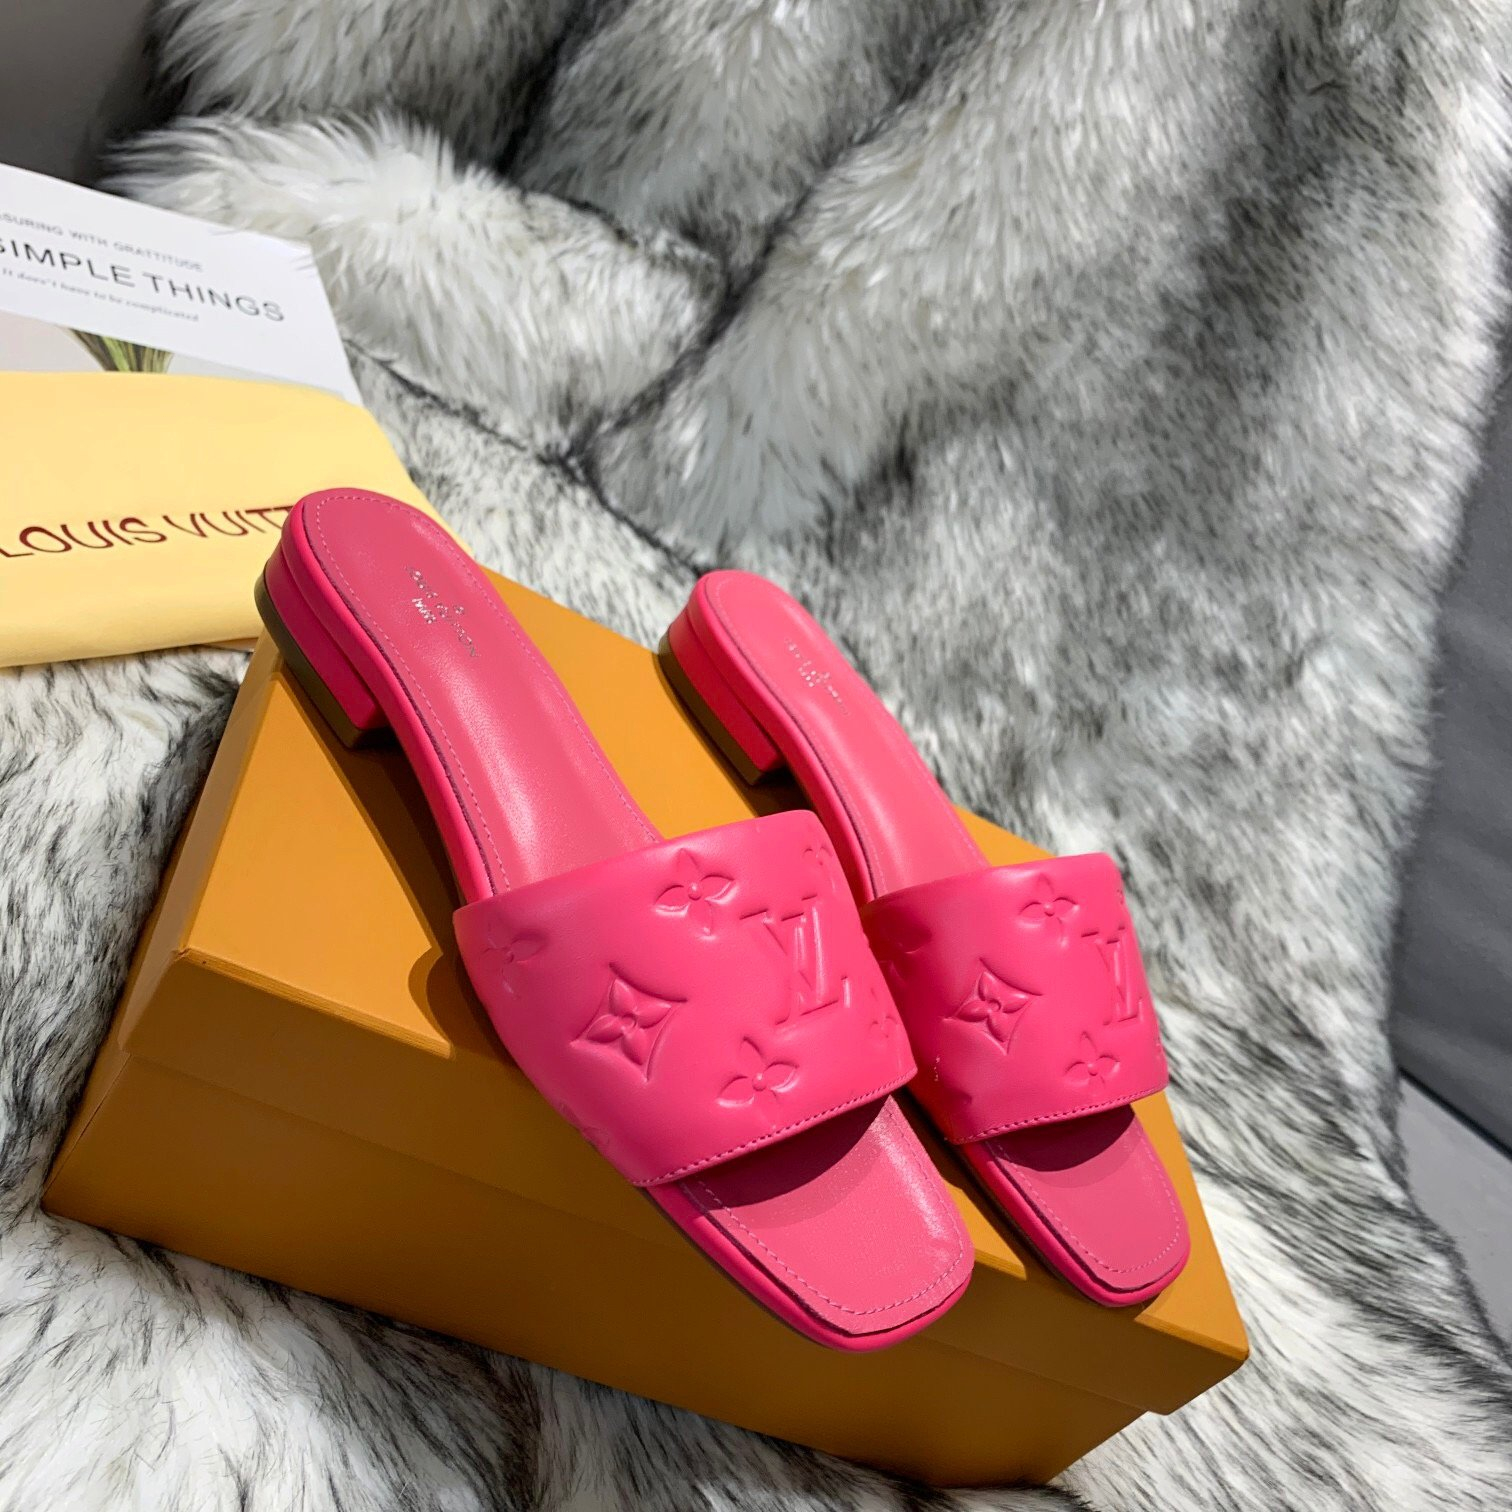 Image of LV New slippers